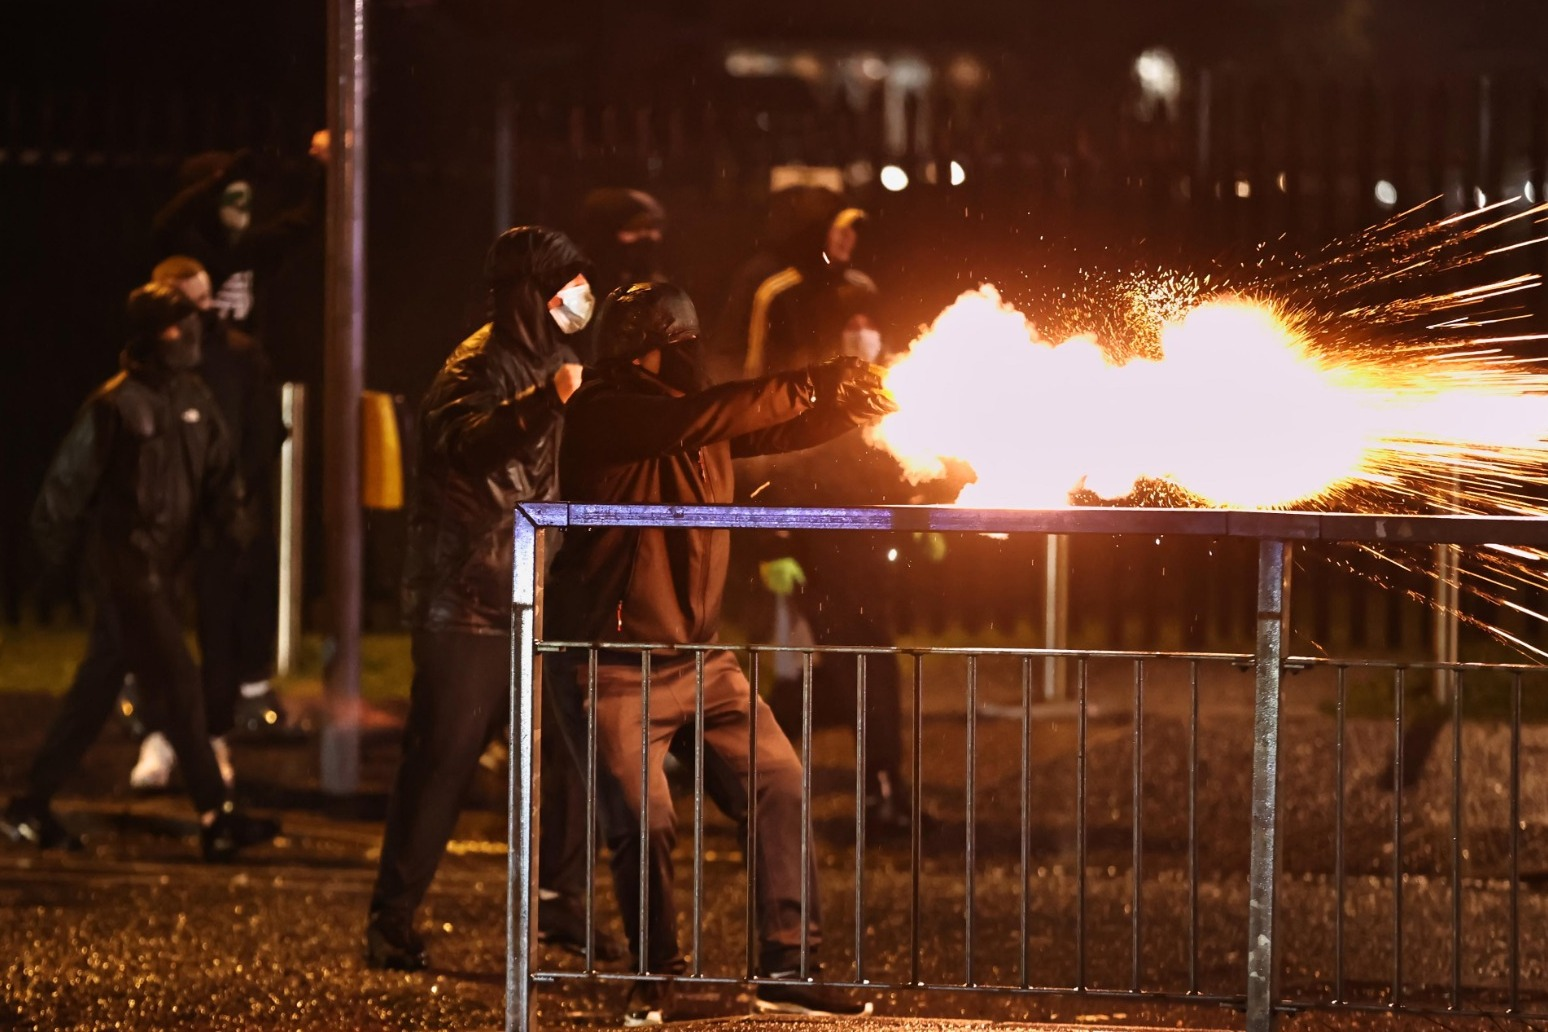 Police blast rioters with water cannon as violence flares again in N Ireland